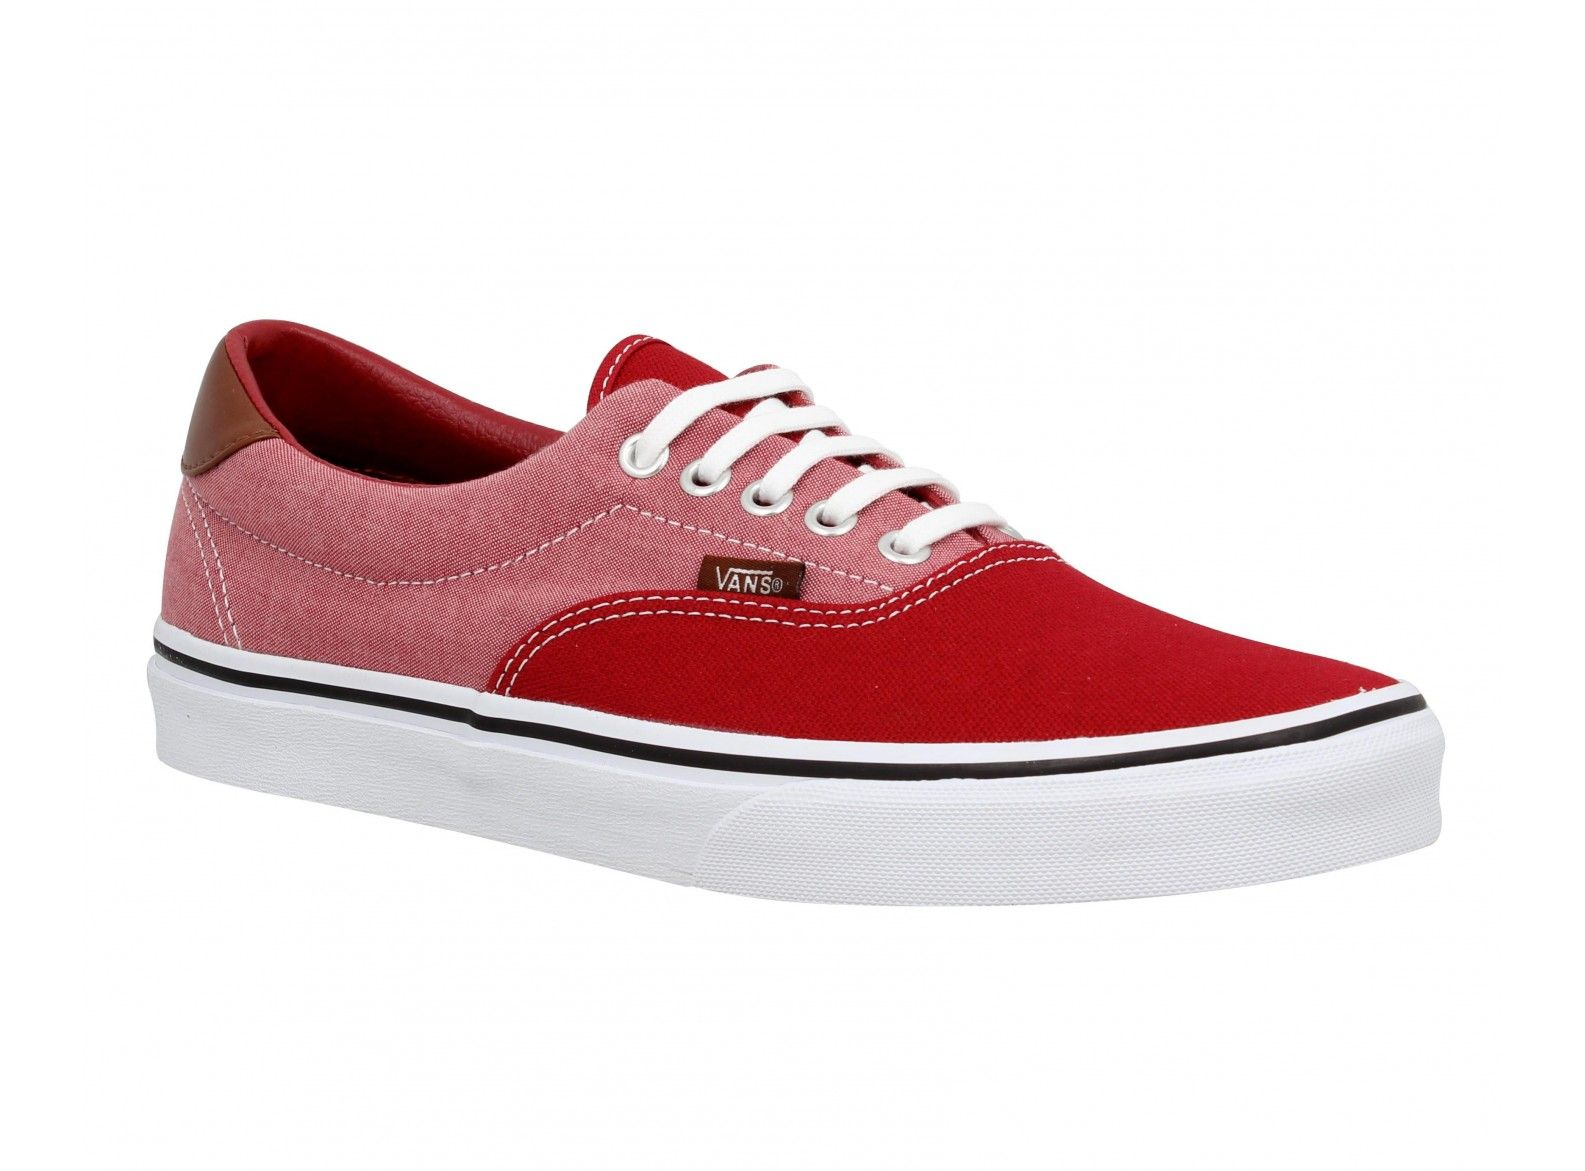 chaussure vans rouge homme